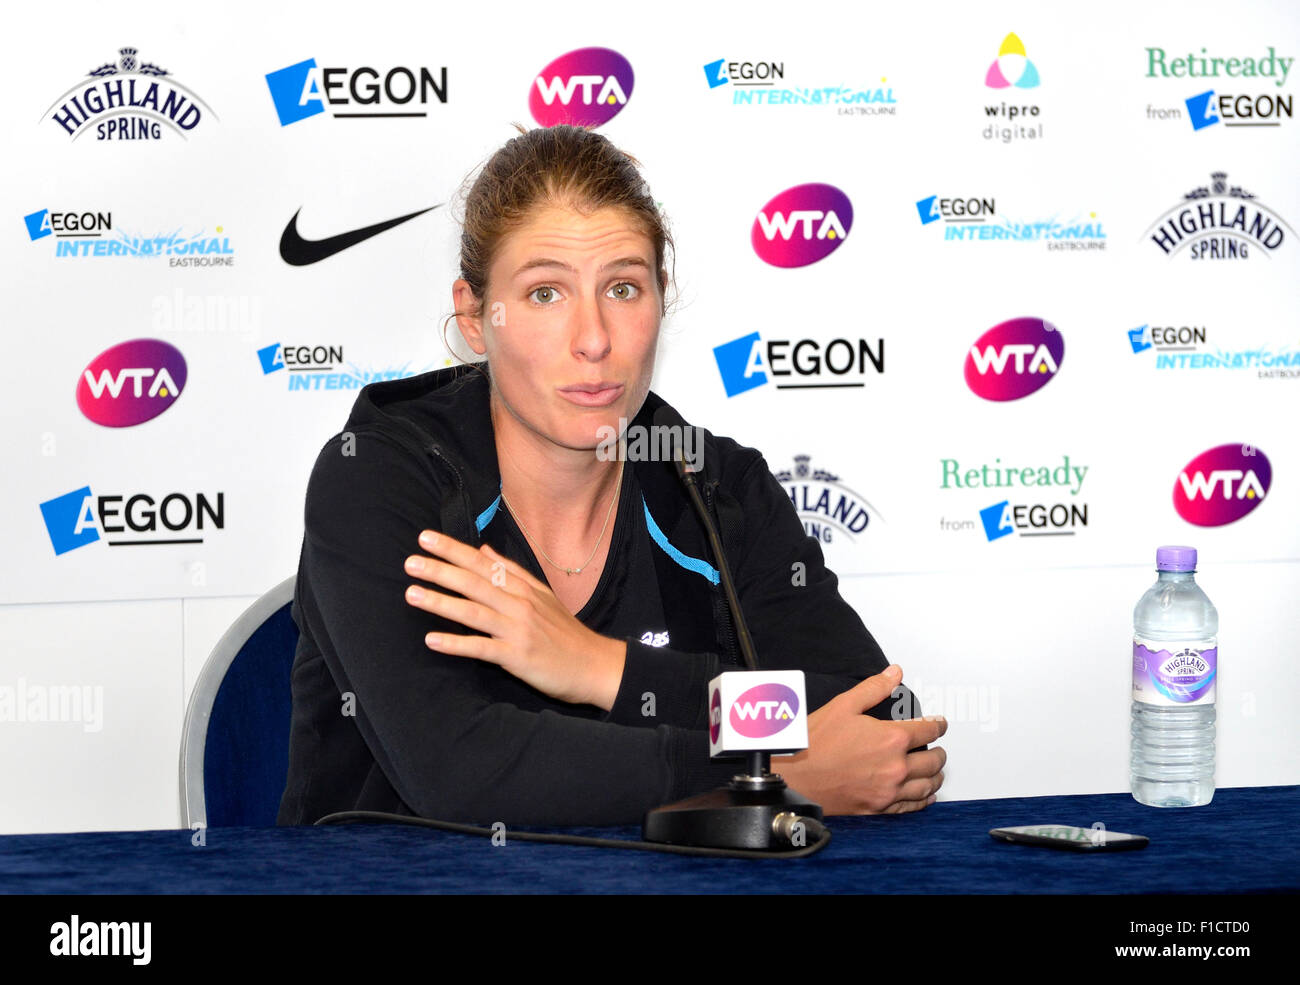 Johanna Konta (GB) in a press conference at the Aegon International, Eastbourne, 24 June 2015. (Accredited photographer) - Stock Image